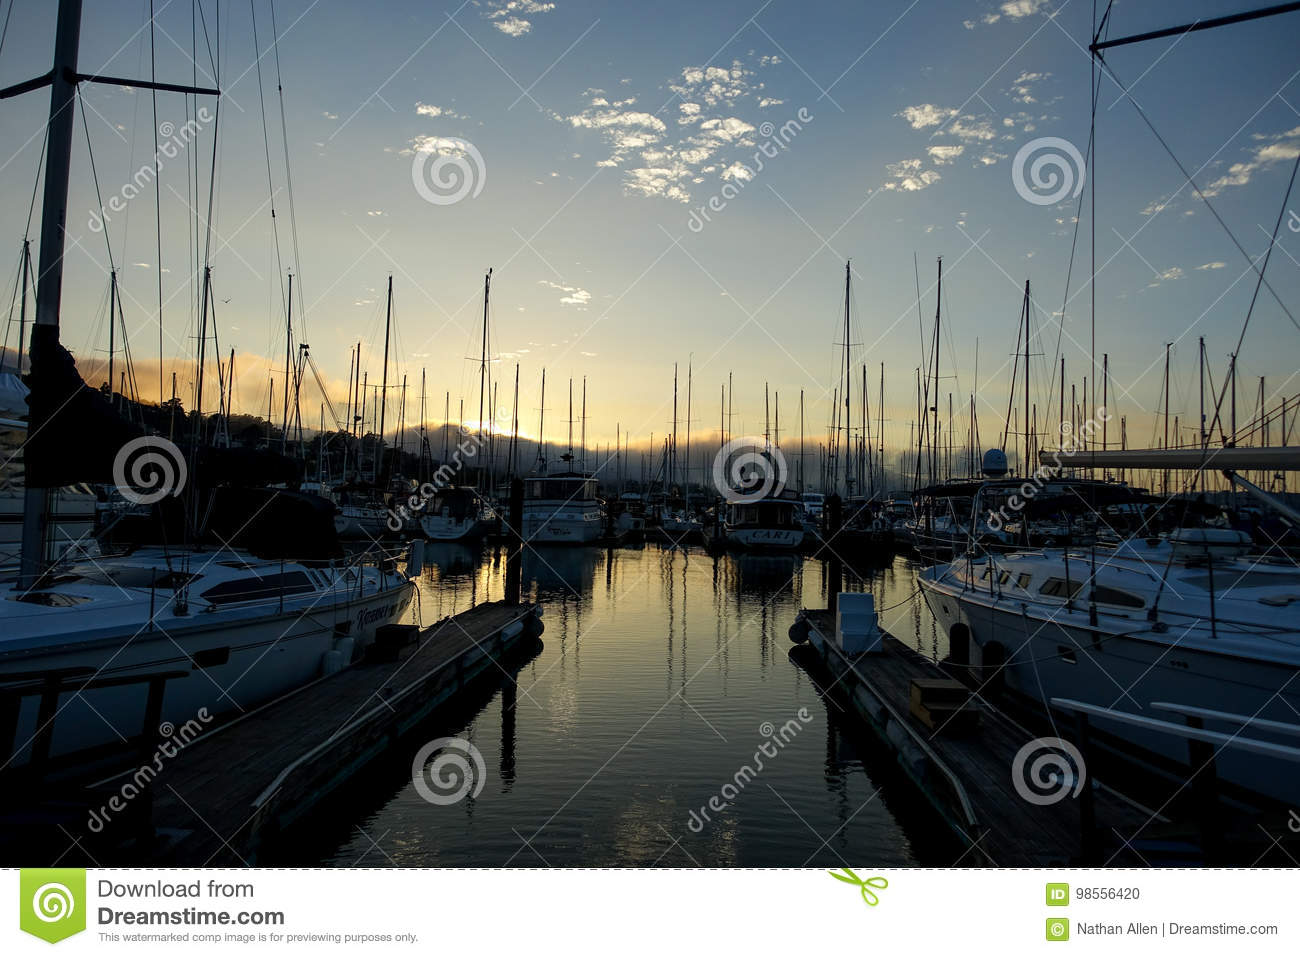 Sausalito Boat Masts In The Harbor Editorial Image - Image